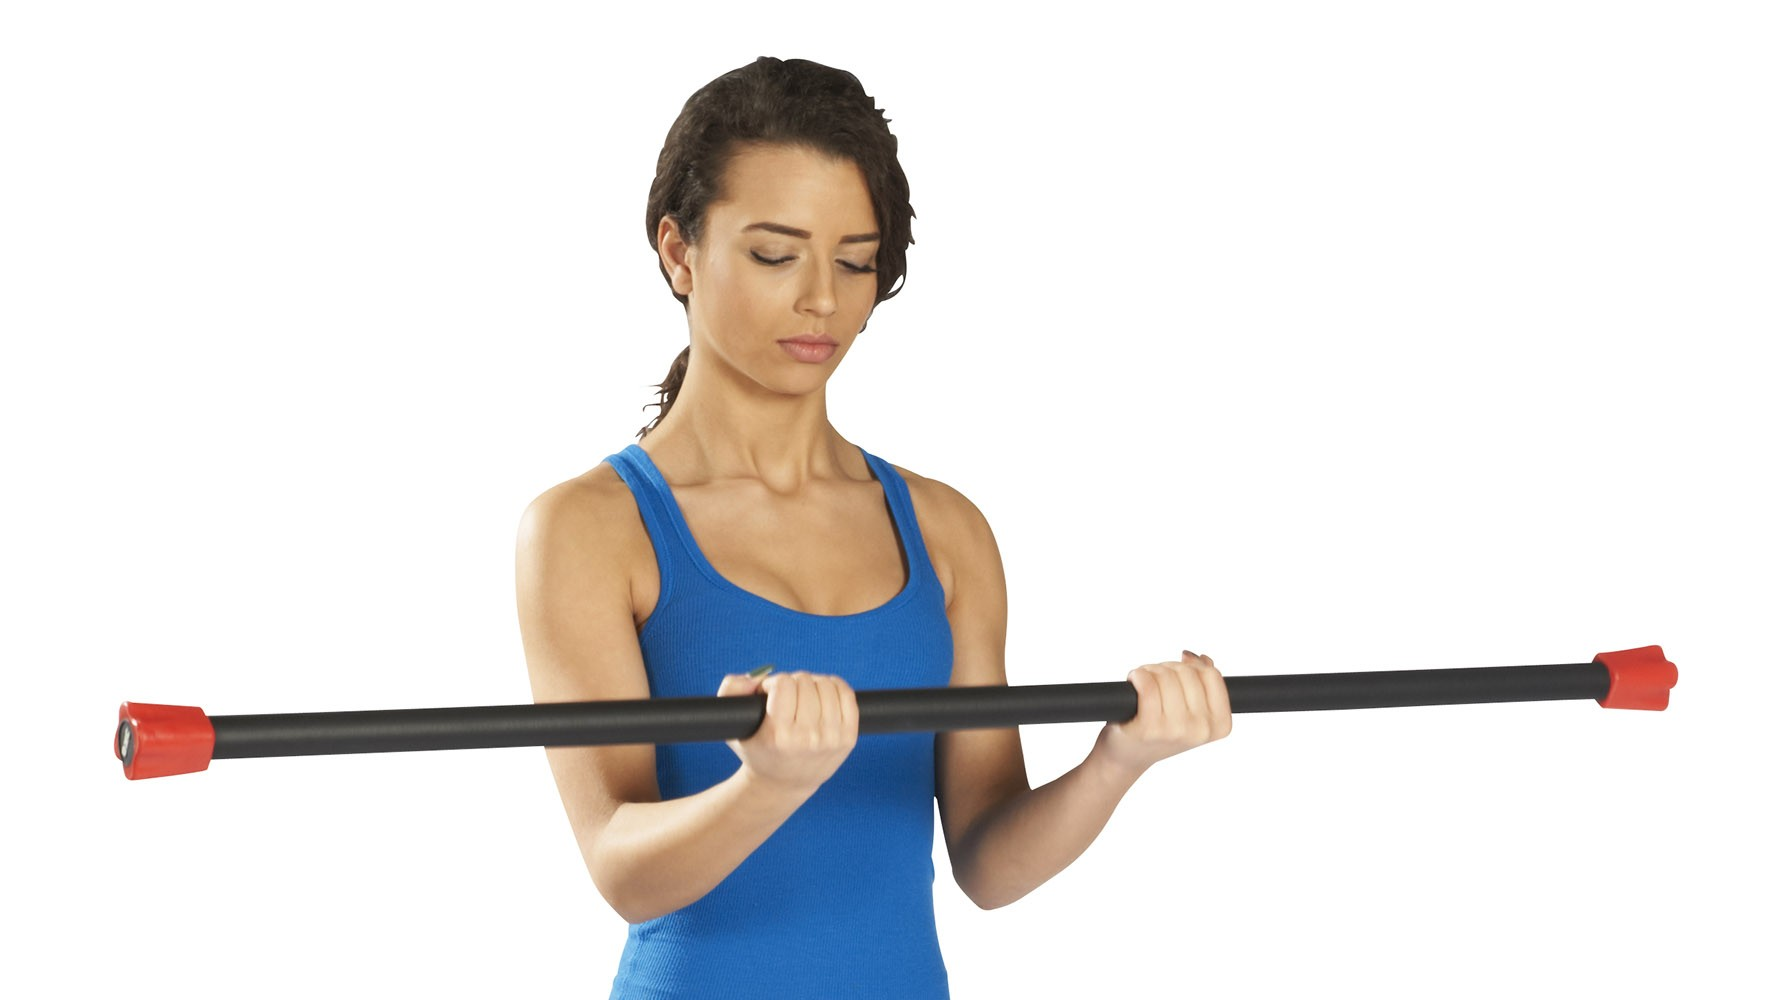 lifts body bar exercise